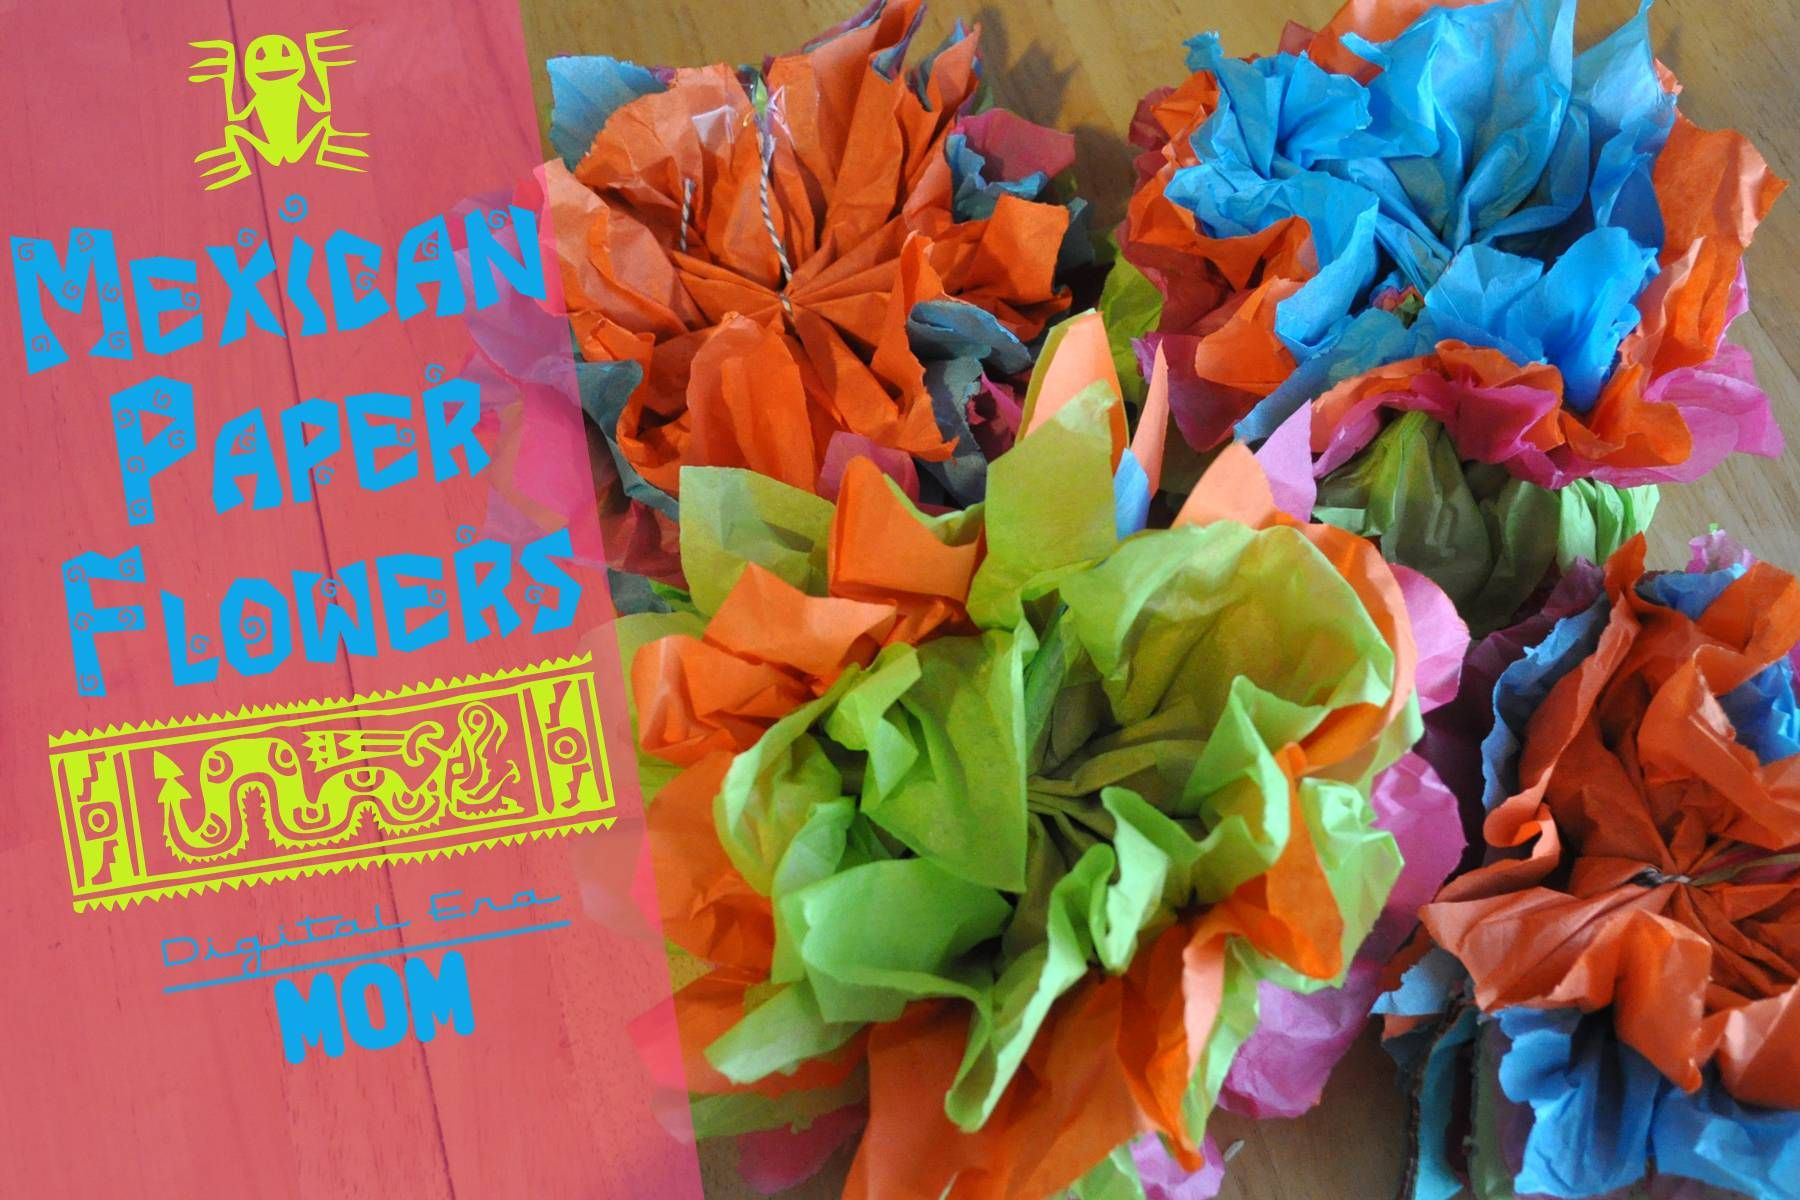 Mexican paper flowers pinterest diy birthday mexicans and these mexican paper flowers are perfect for easy diy birthday party decorations because they can be customized to any color scheme mightylinksfo